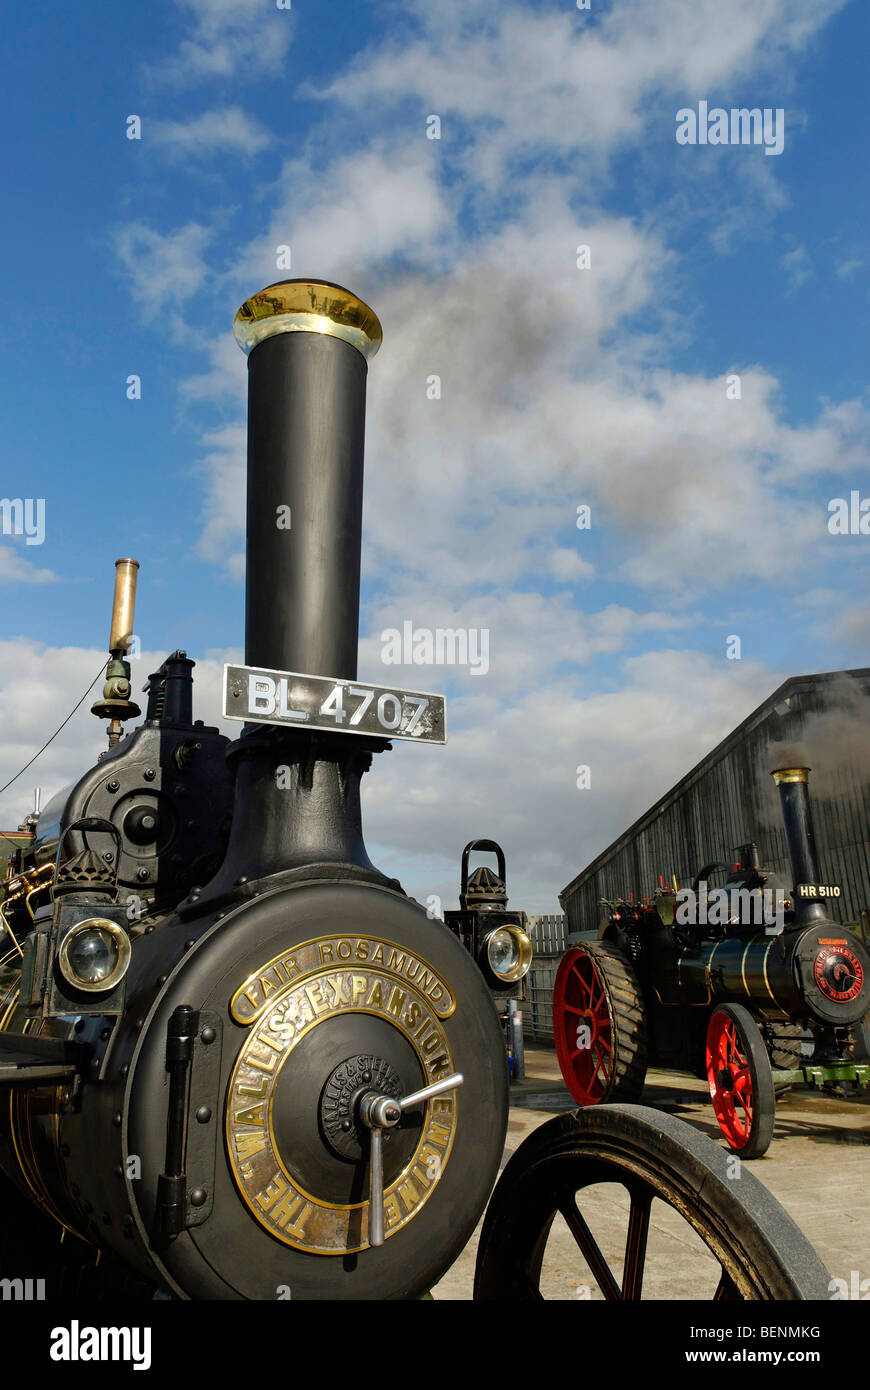 2 Wallis & Steevens Steam Engines, Fair Rosamund & Little Lauren - Stock Image